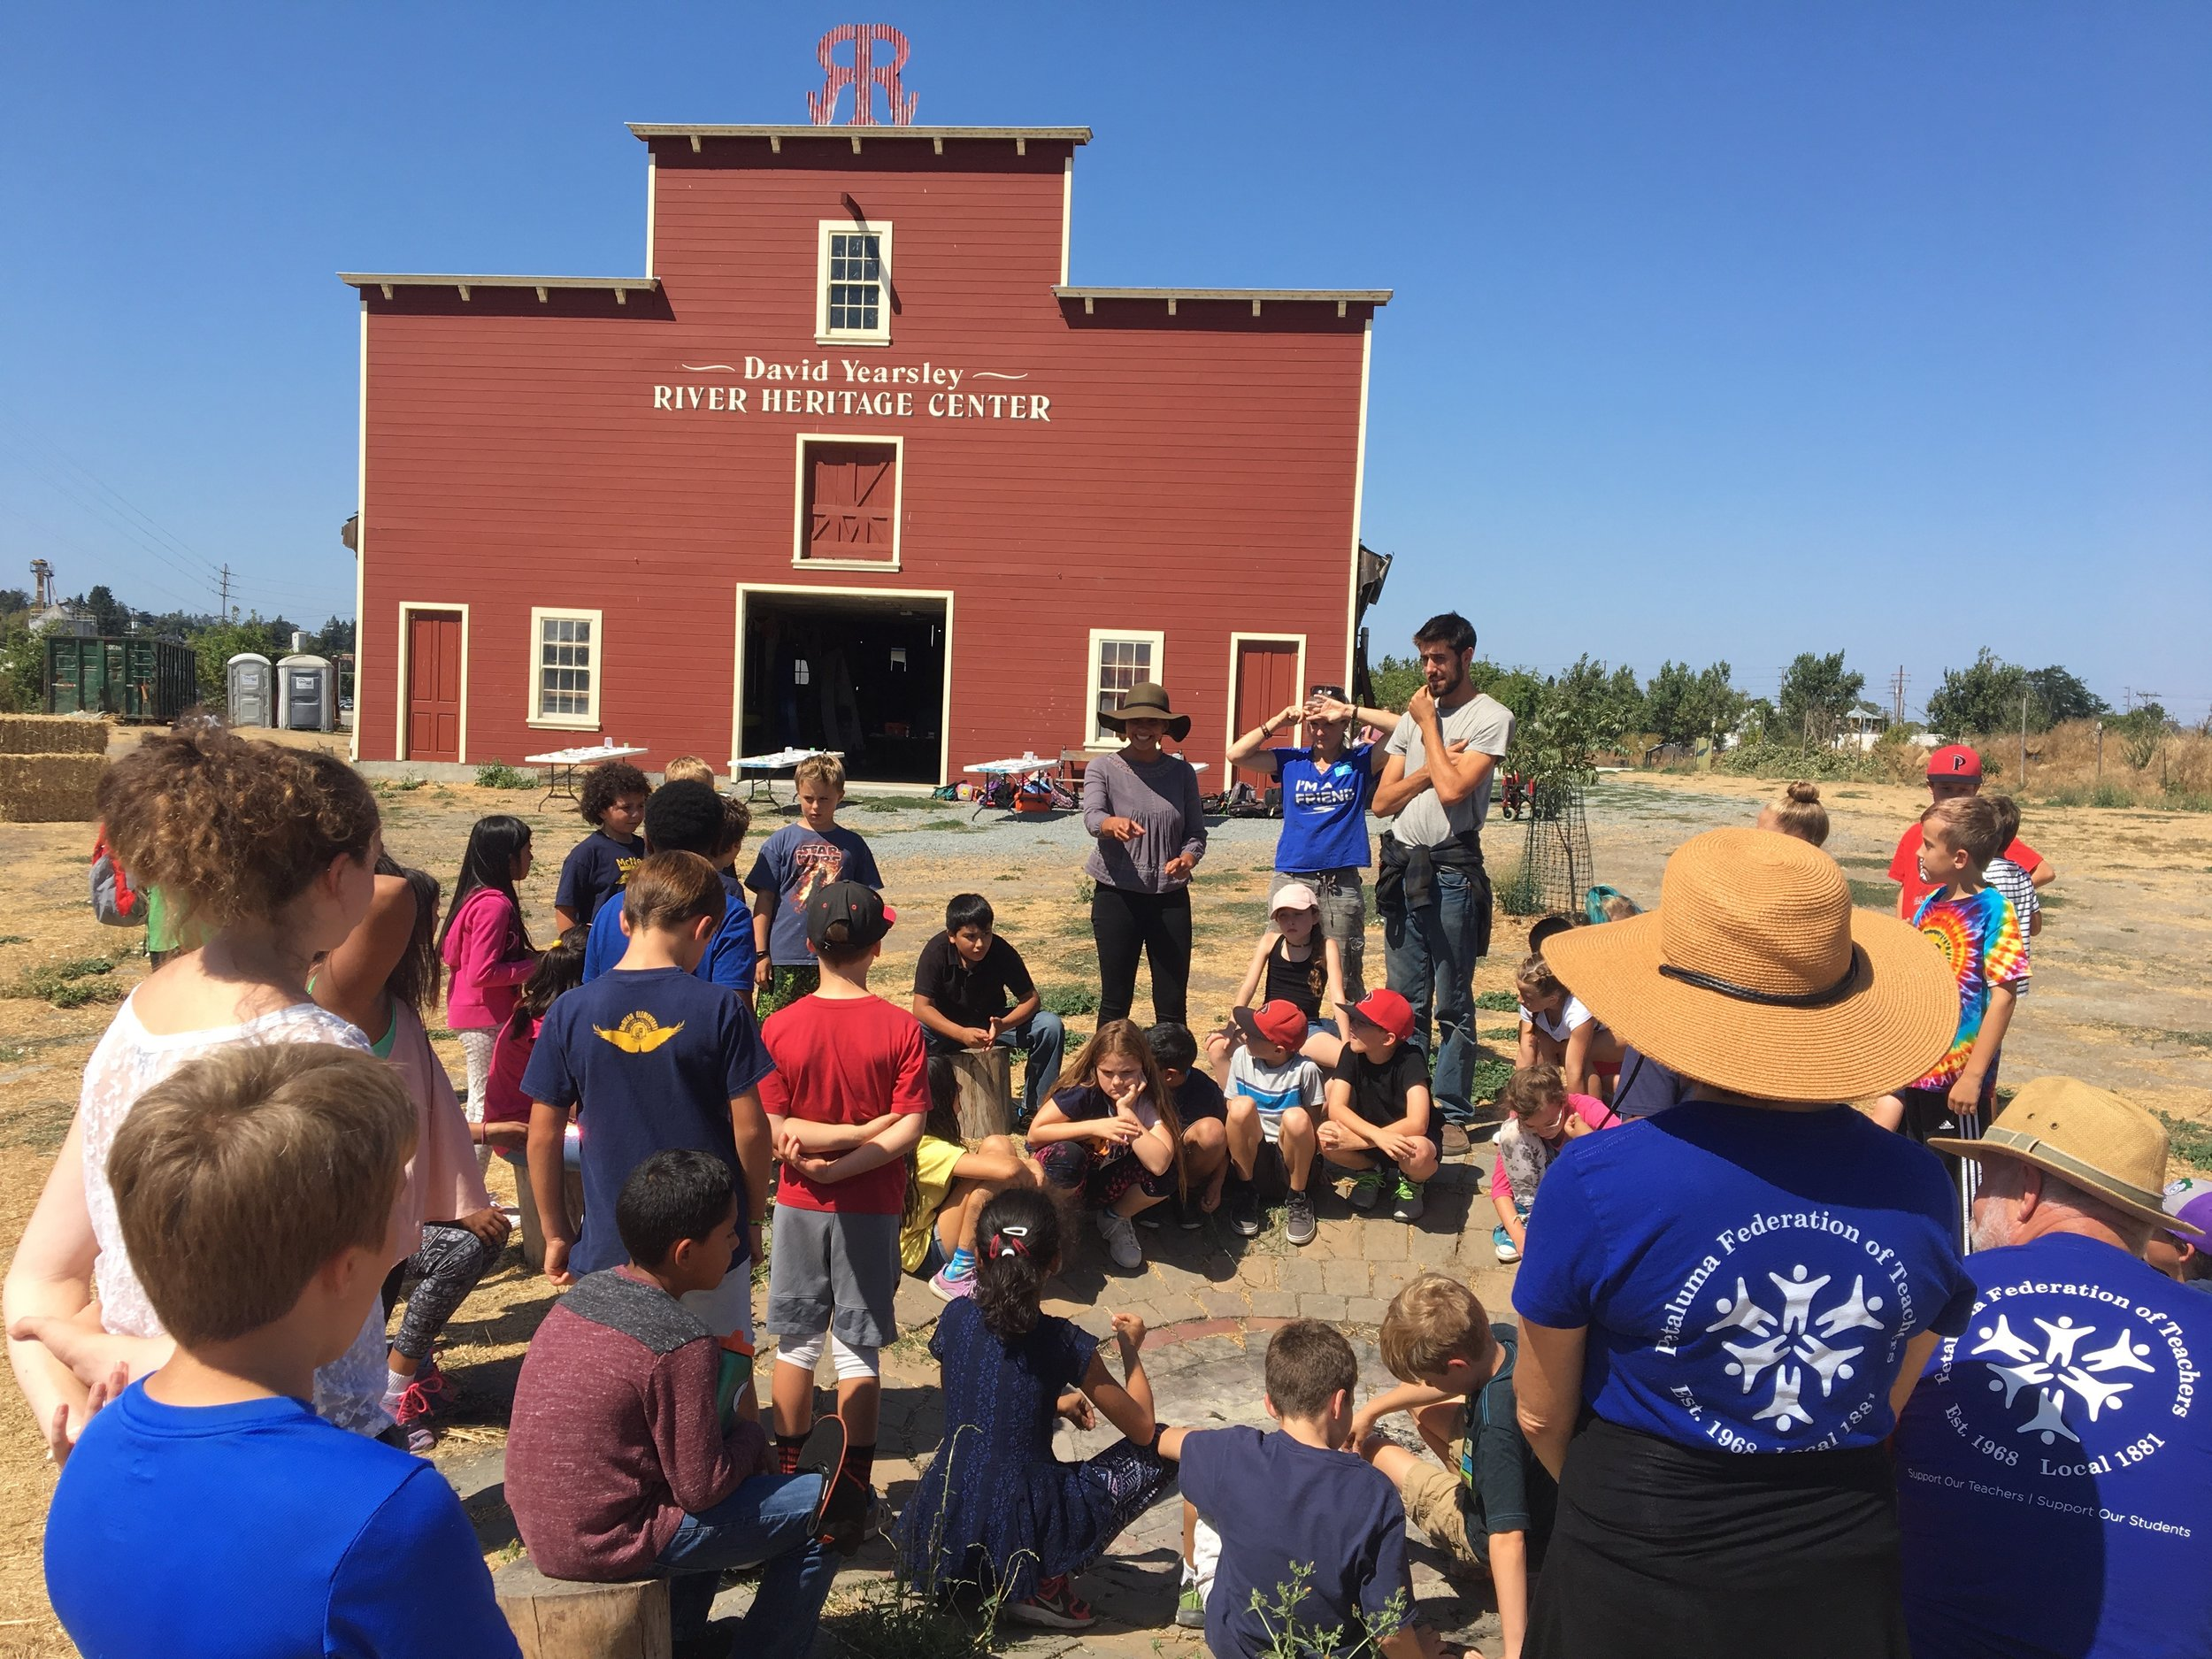 Students at the David Yearsley River Heritage Center.